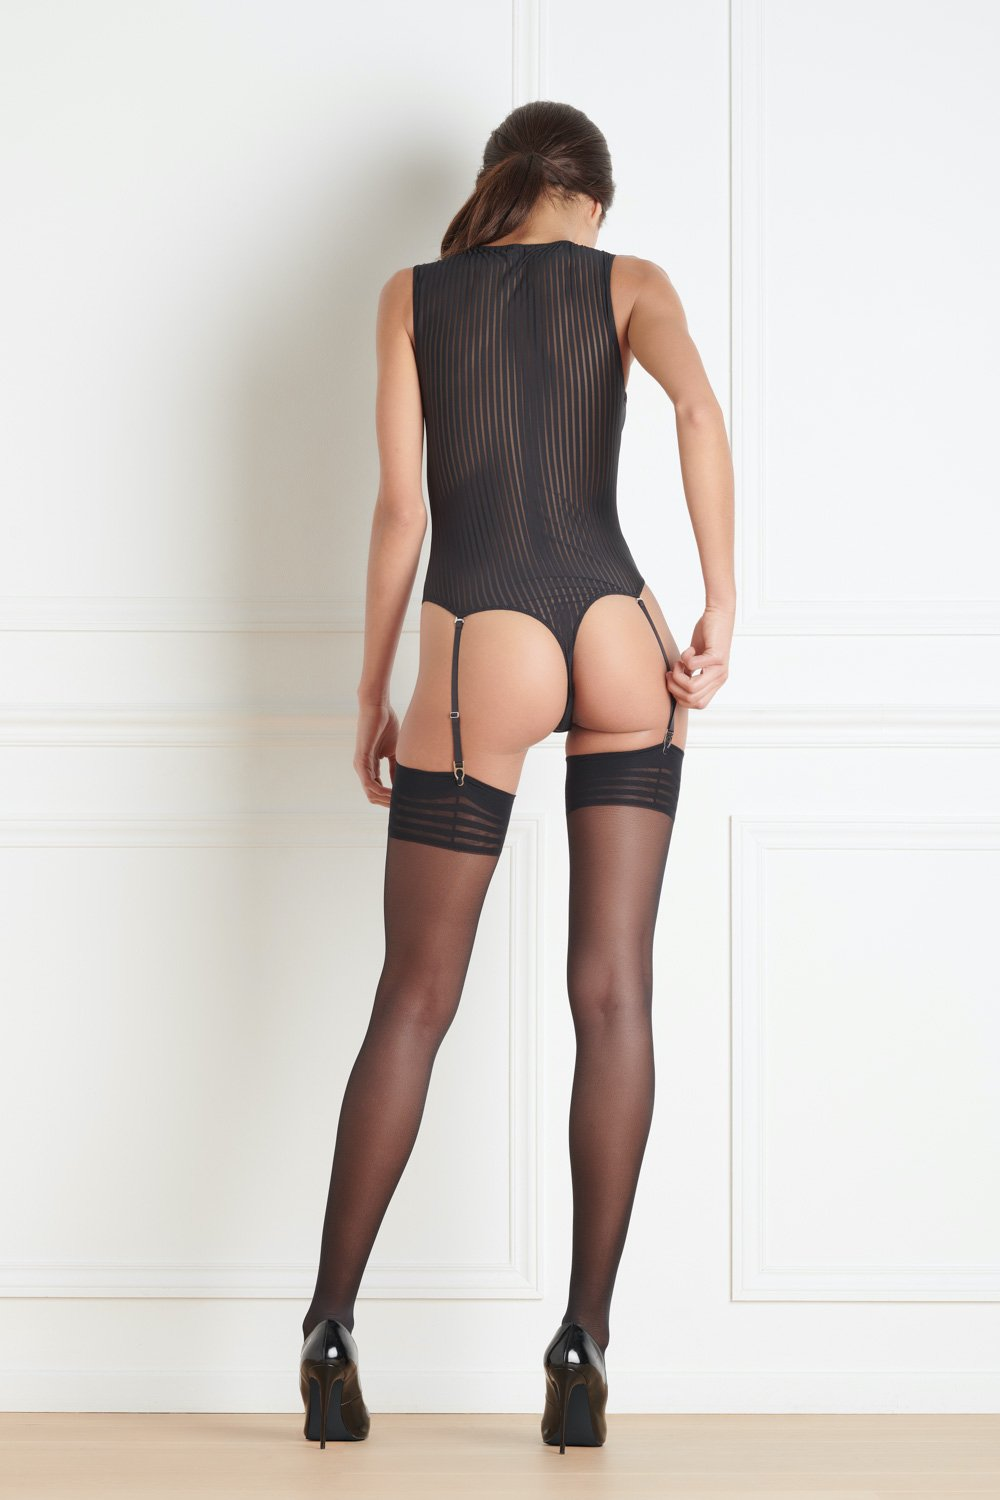 Maison Close Bande à Part Sleeveless Thong Body with Suspenders